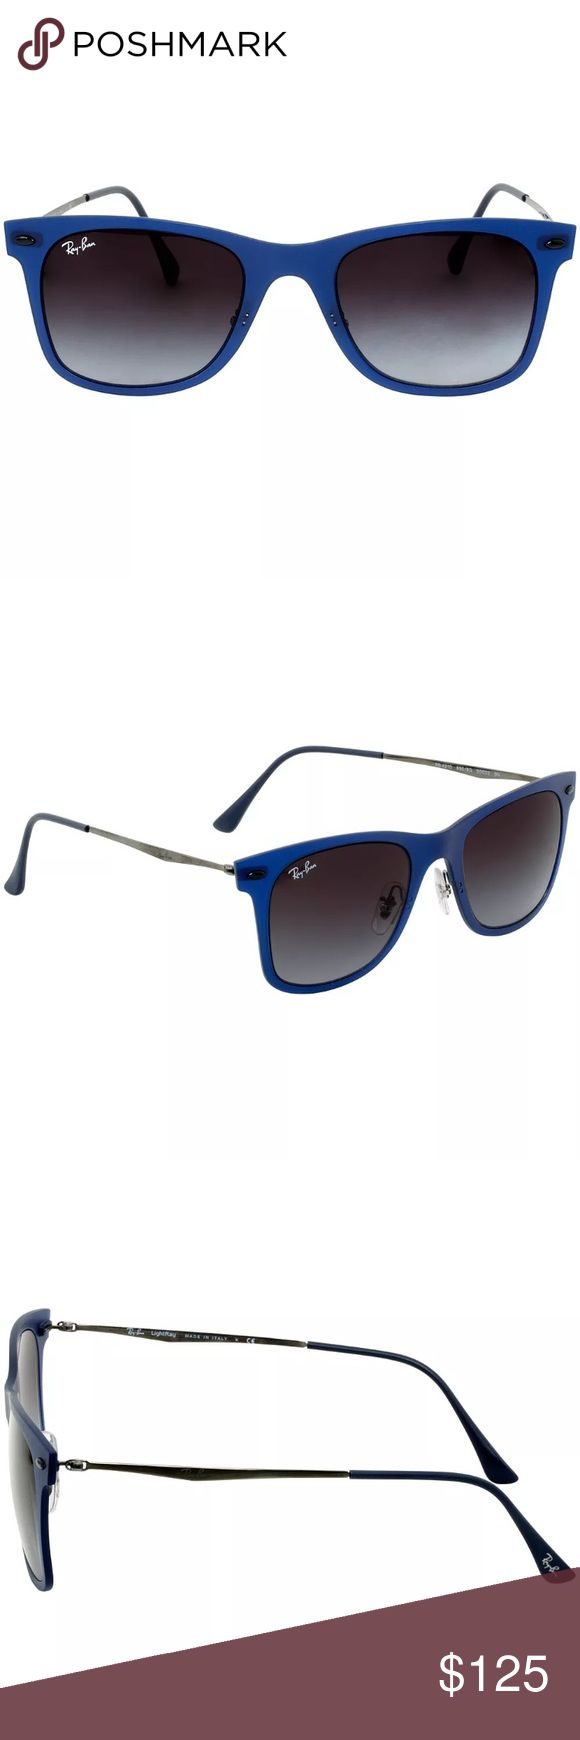 Authentic Ray ban wayfarer blue sunglasses Size 50. Gray lens Ray-Ban Accessories Sunglasses